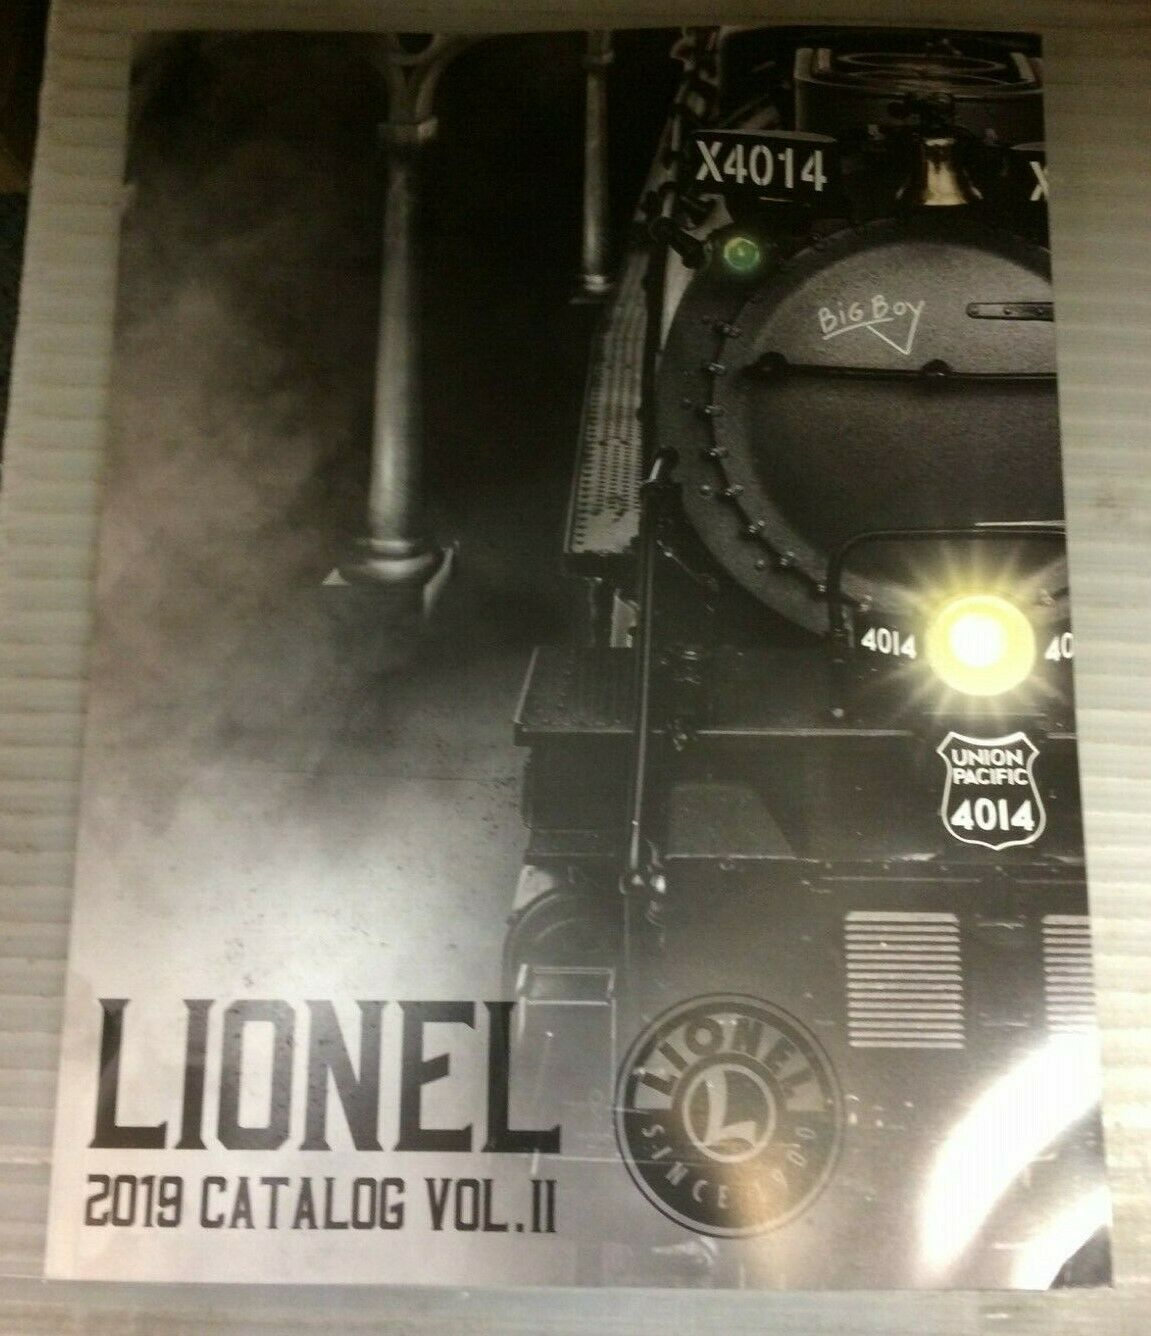 A New Lionel Catalog for 2019